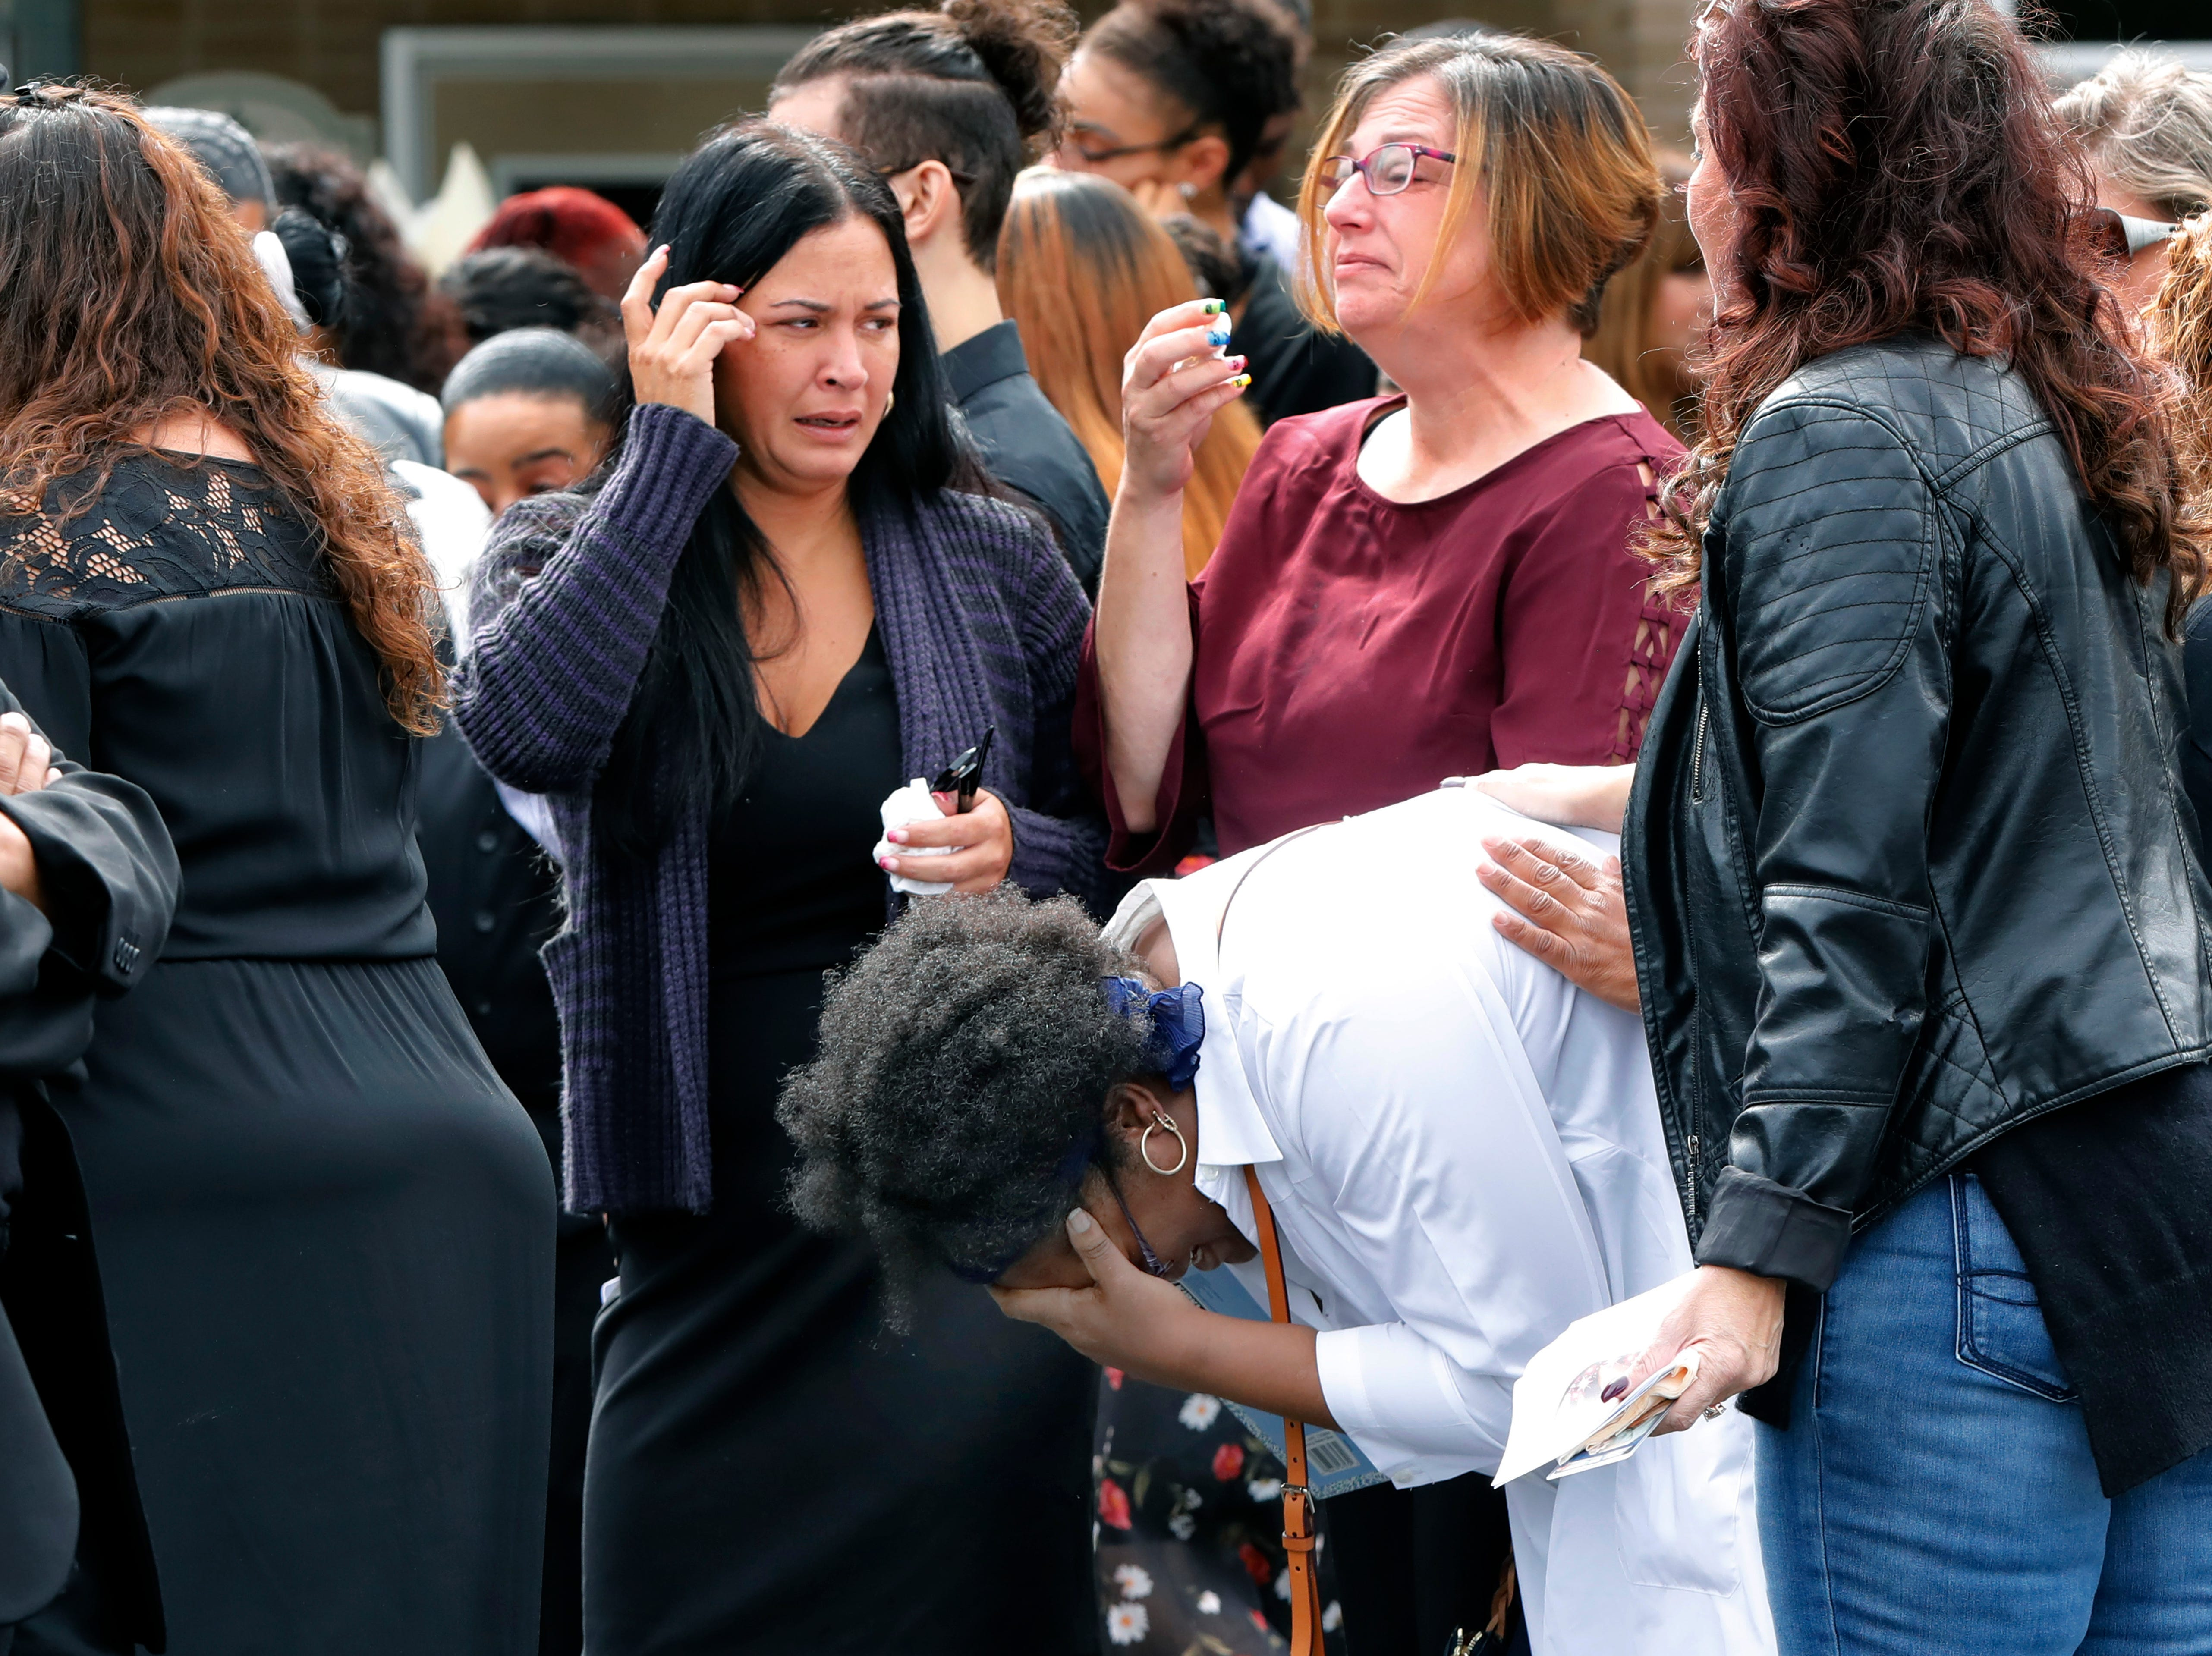 Mourners gather outside Saint Anne's Roman Catholic Church following the funeral for Evelyn Rodriguez, in Brentwood, N.Y., Friday, Sept. 21, 2018. Rodriguez, 50, is a mother recognized by President Donald Trump for turning grief over her daughter's suspected gang killing into a crusade against the gang MS-13. She was struck and killed by an SUV on Sept. 14 after a heated confrontation with the driver over the placement of a memorial to her slain daughter, Kayla Cuevas.